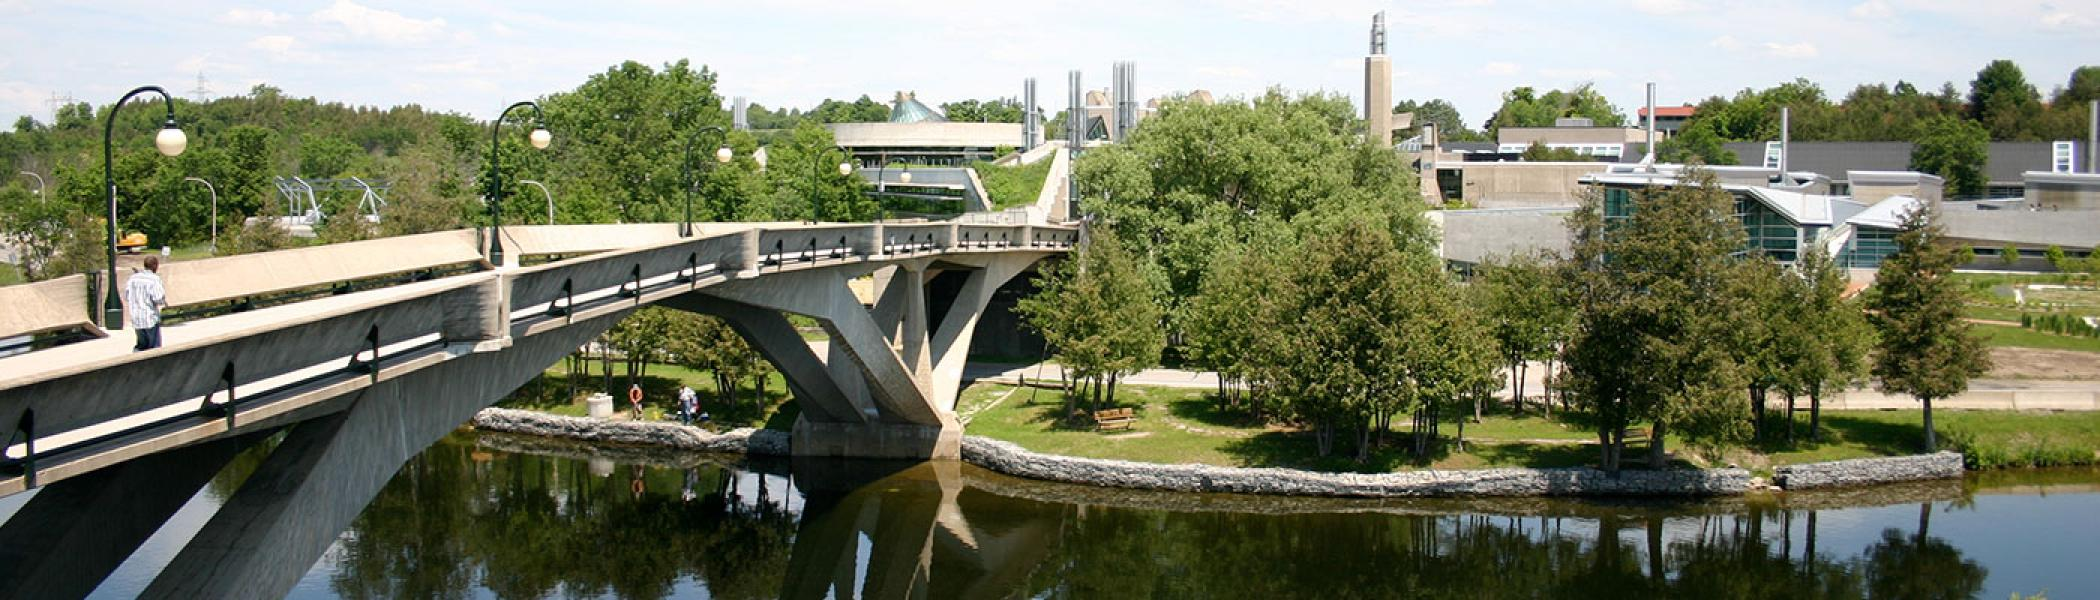 Faryon bridge and the buildings on the east bank of Trent University on a sunny day